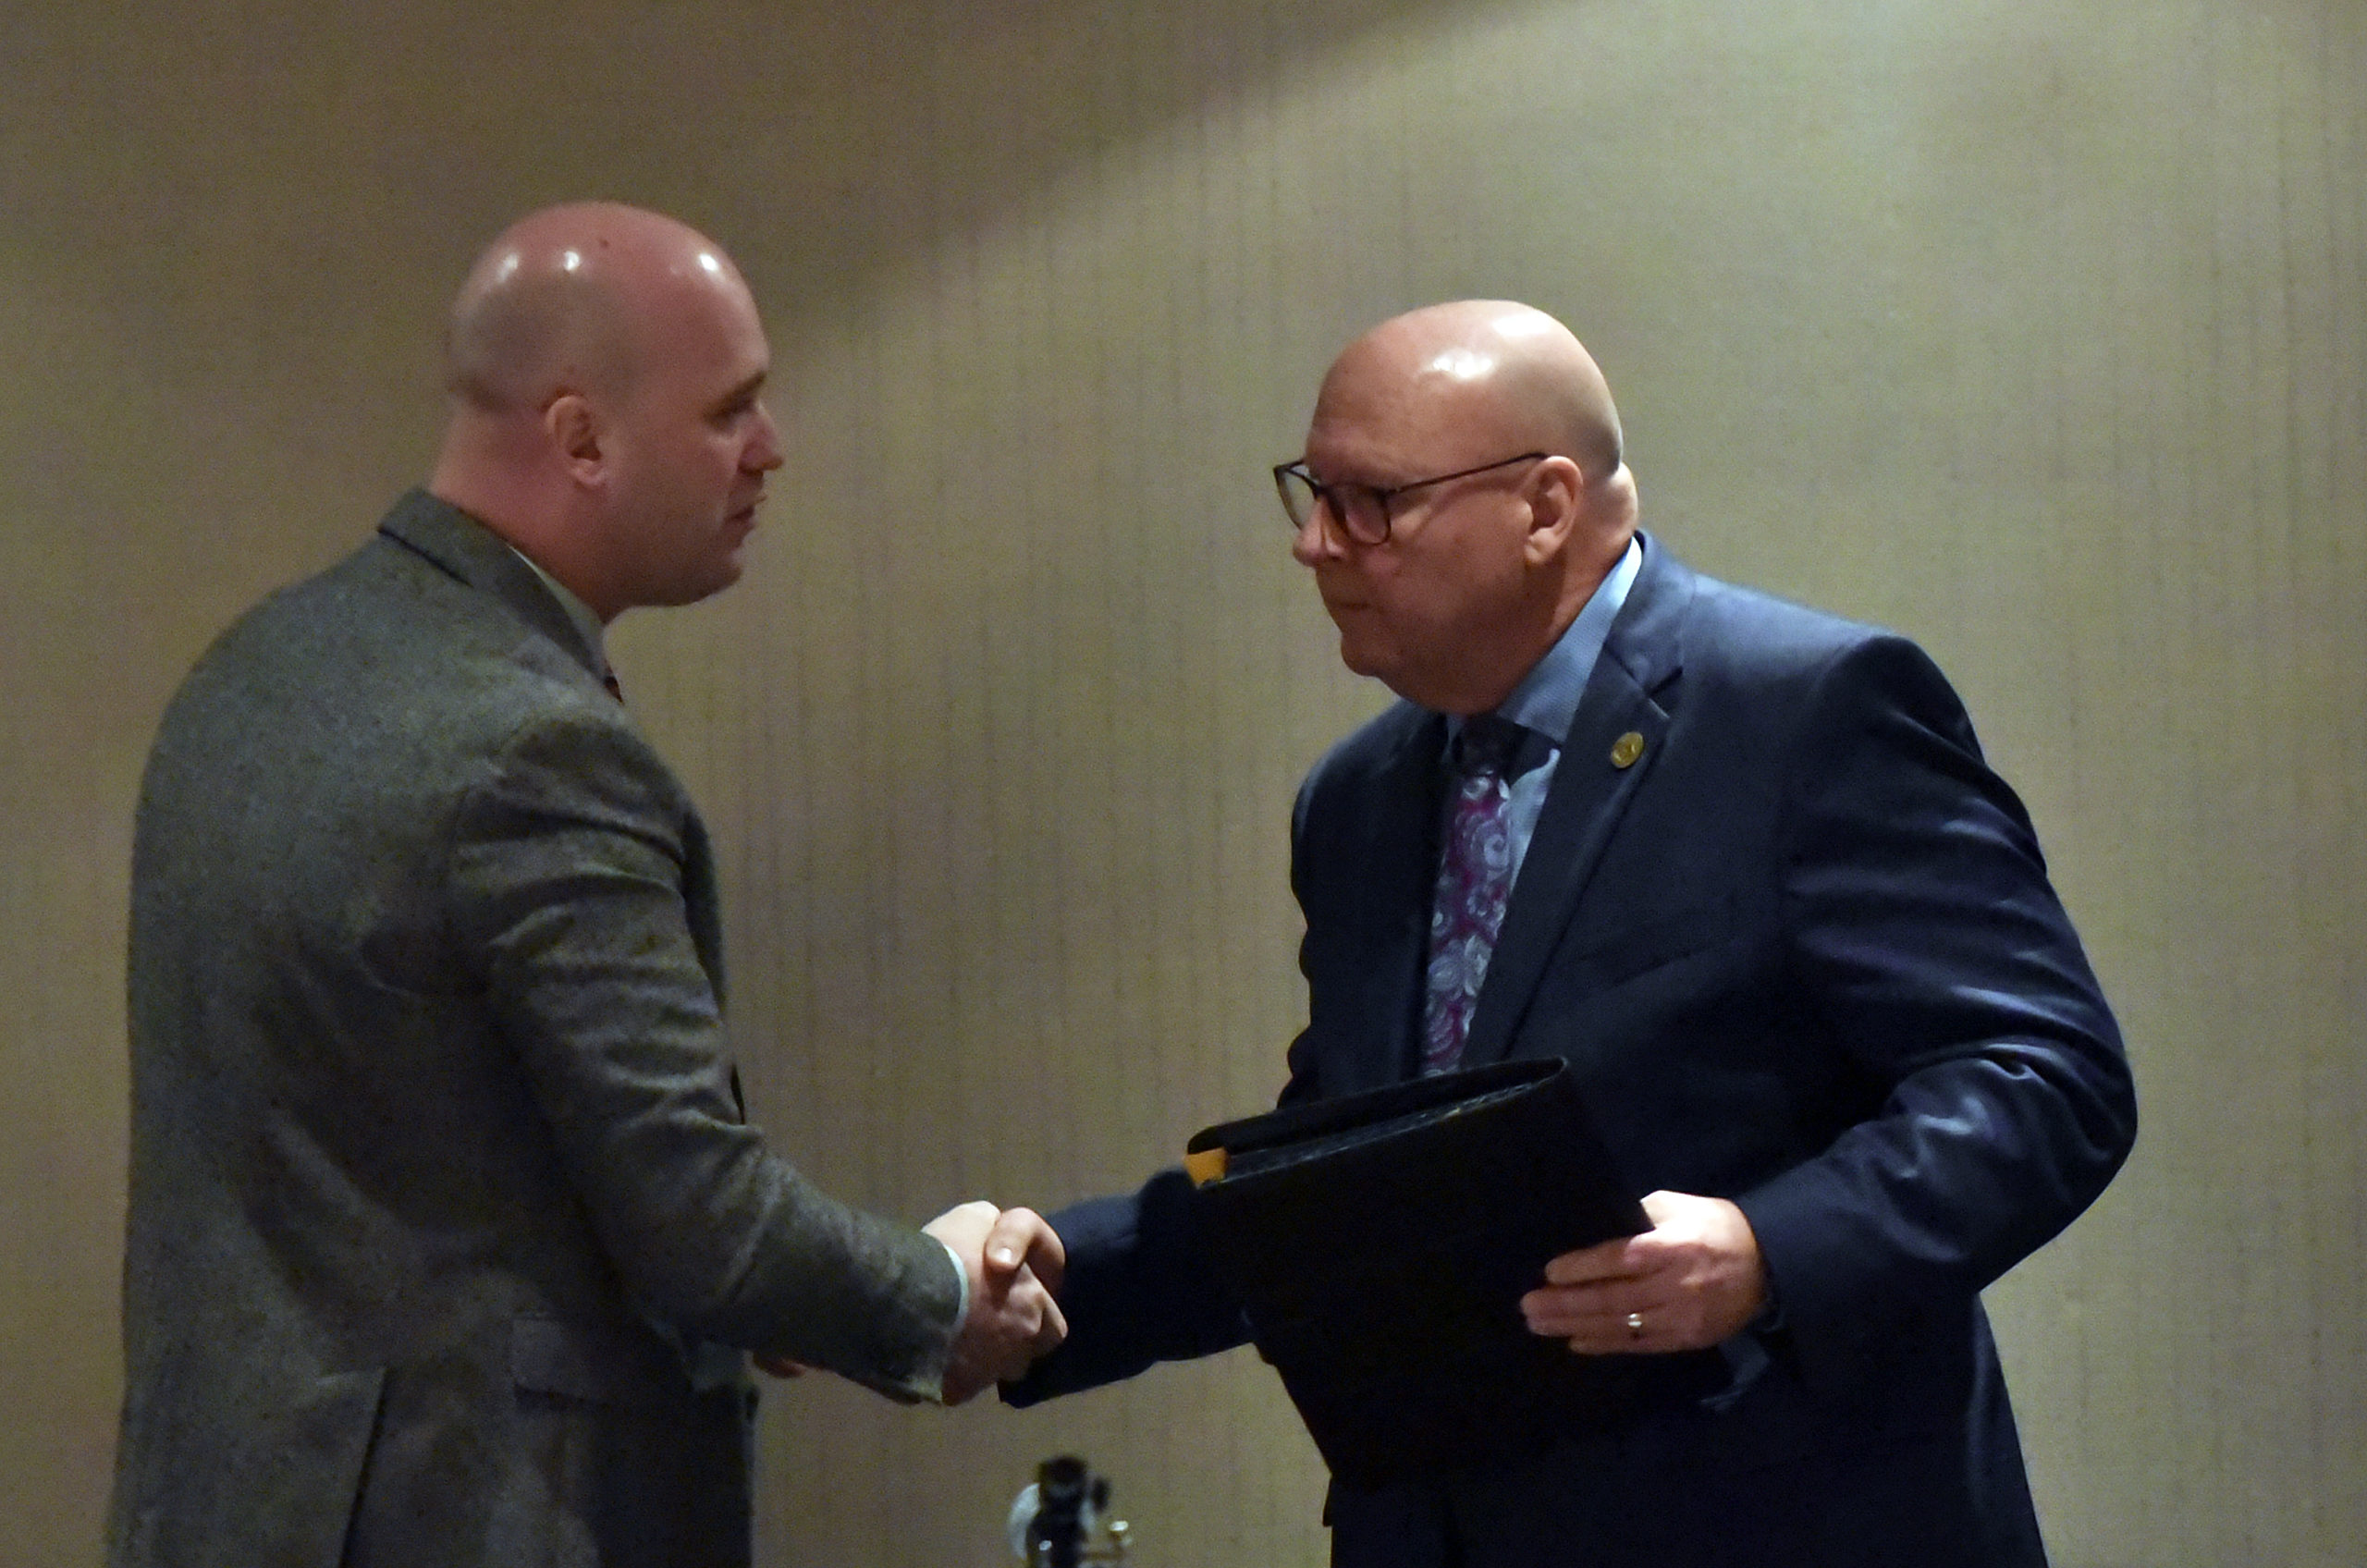 Commissioner Chairman Daniel Camp and Commissioner Jack Manning shake hands at the Annual State of the County meeting.